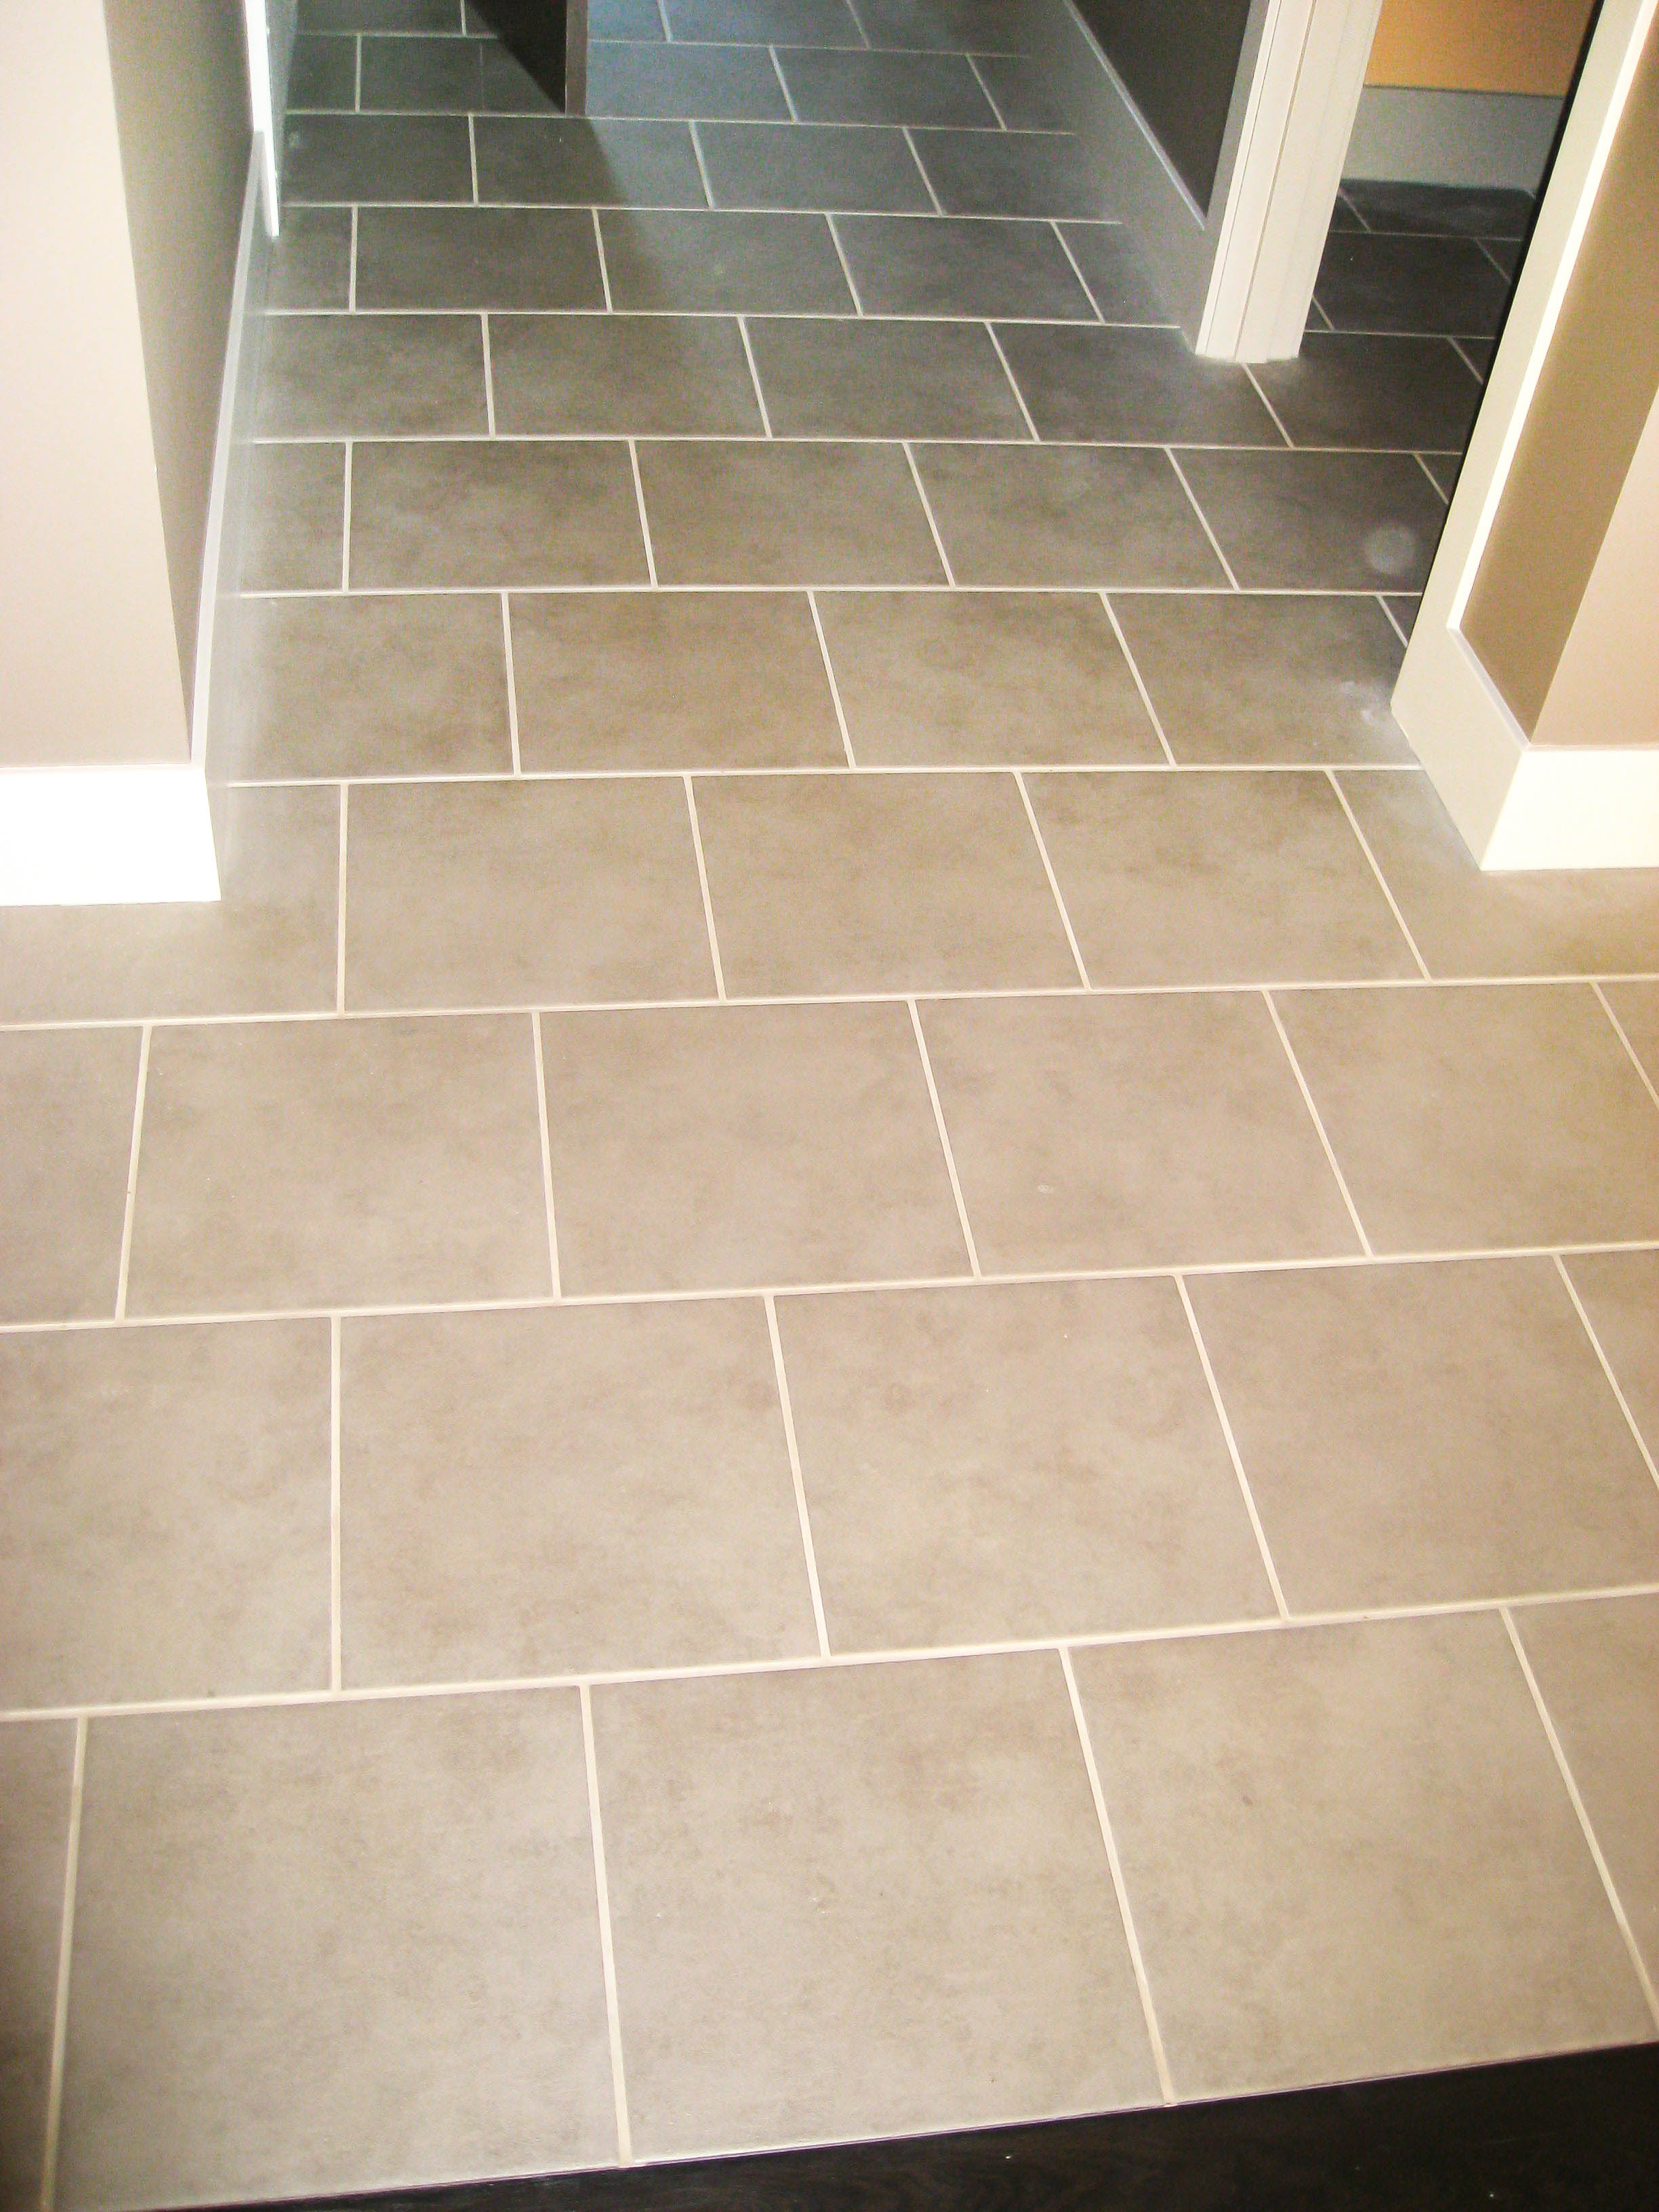 Seattle tile and grout cleaning tile contractor irc tile services tile and grout cleaning in seattle dailygadgetfo Choice Image